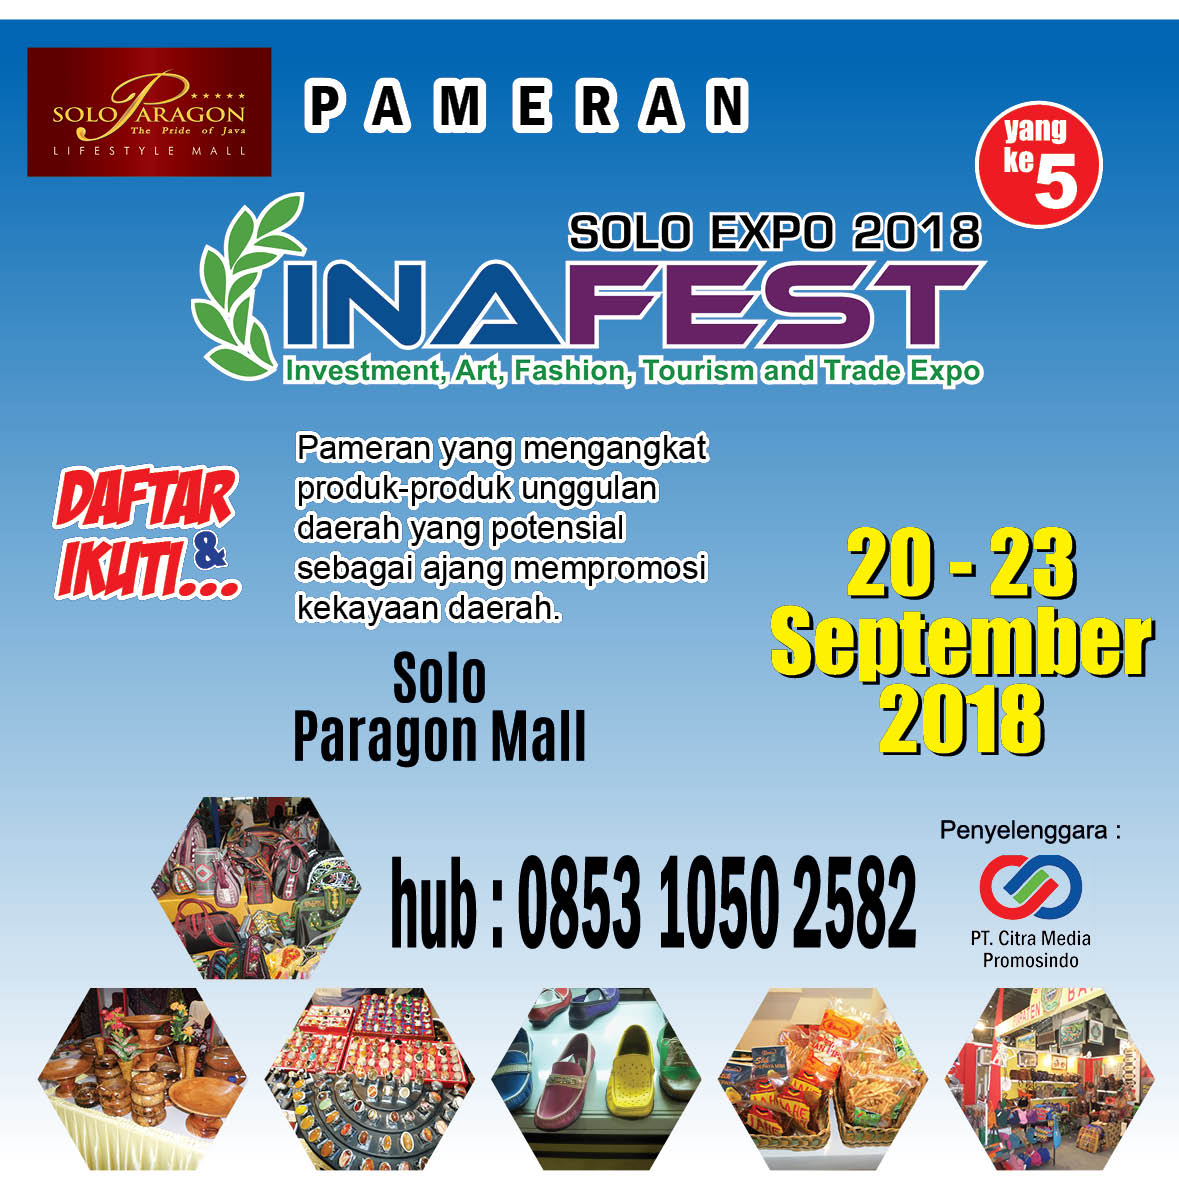 Solo Inafest Expo - Solo Paragon Mall, 22-23 September 2018